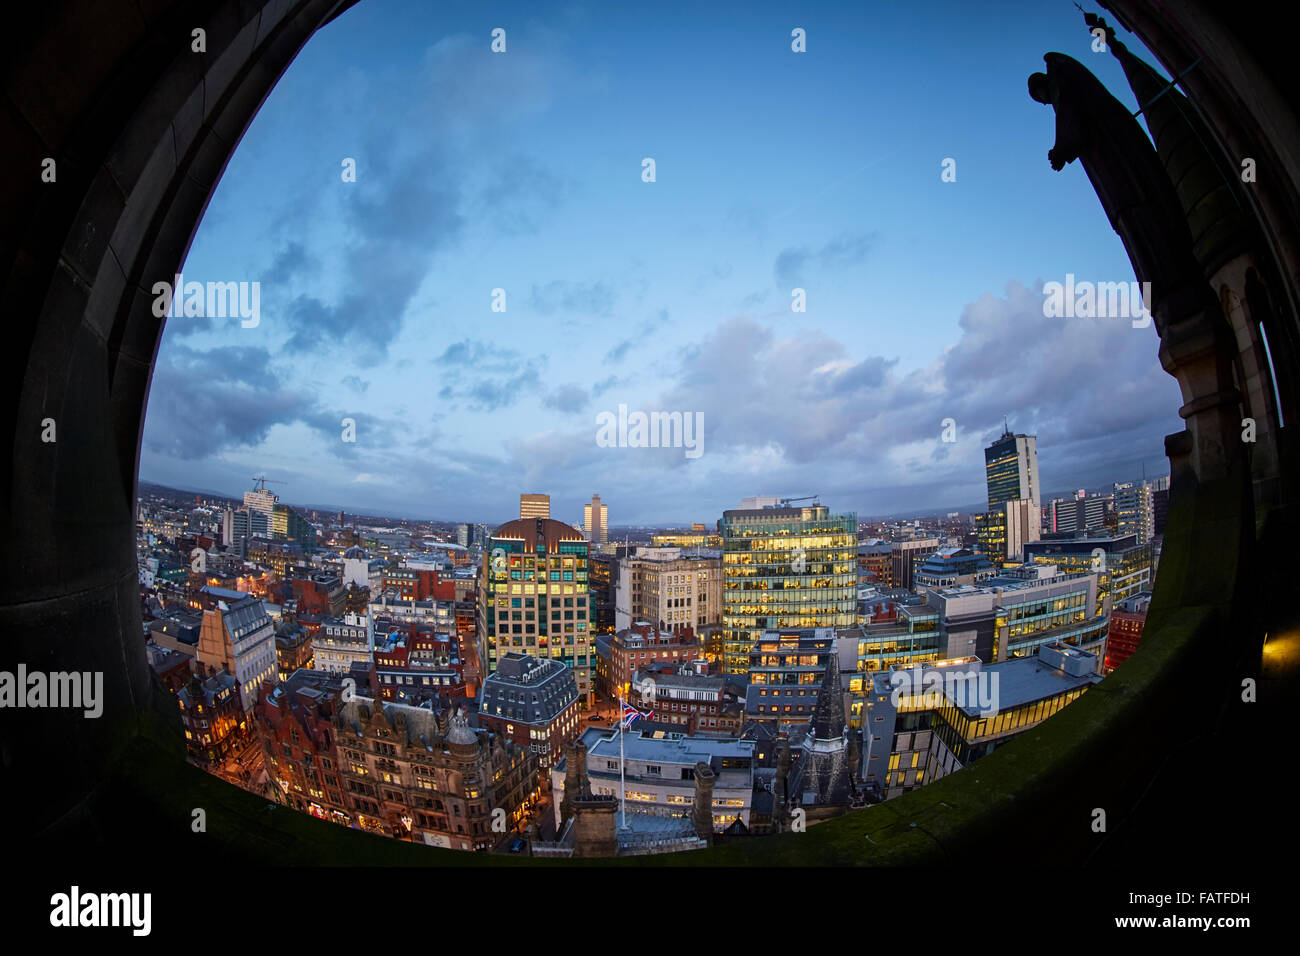 View from Manchester Town Hall clock tower looking at building looking towards king Street   Flag view looking down - Stock Image